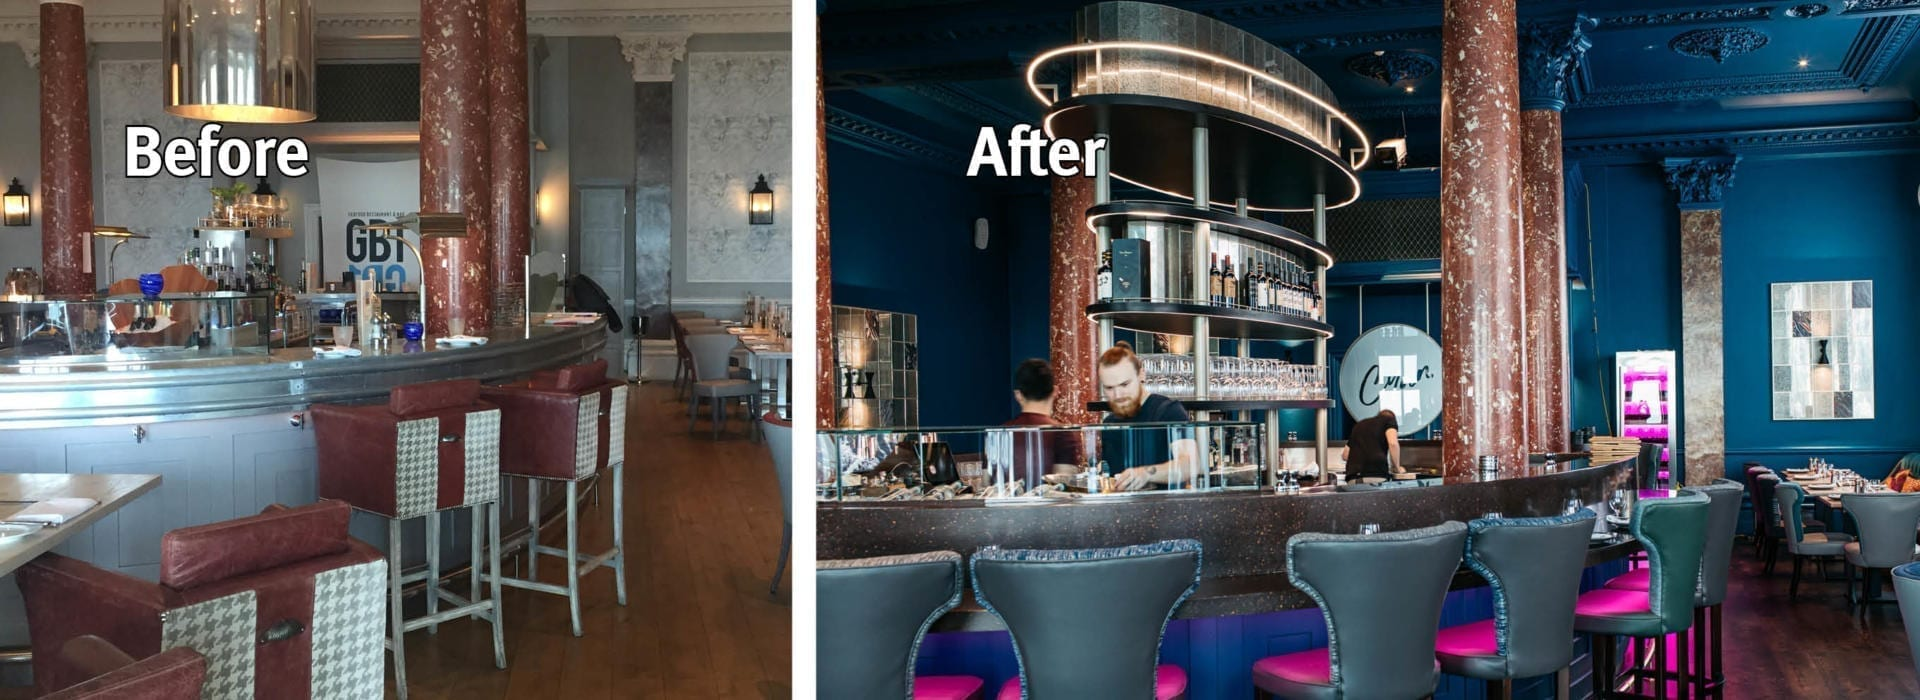 Grand Brighton before and after bar